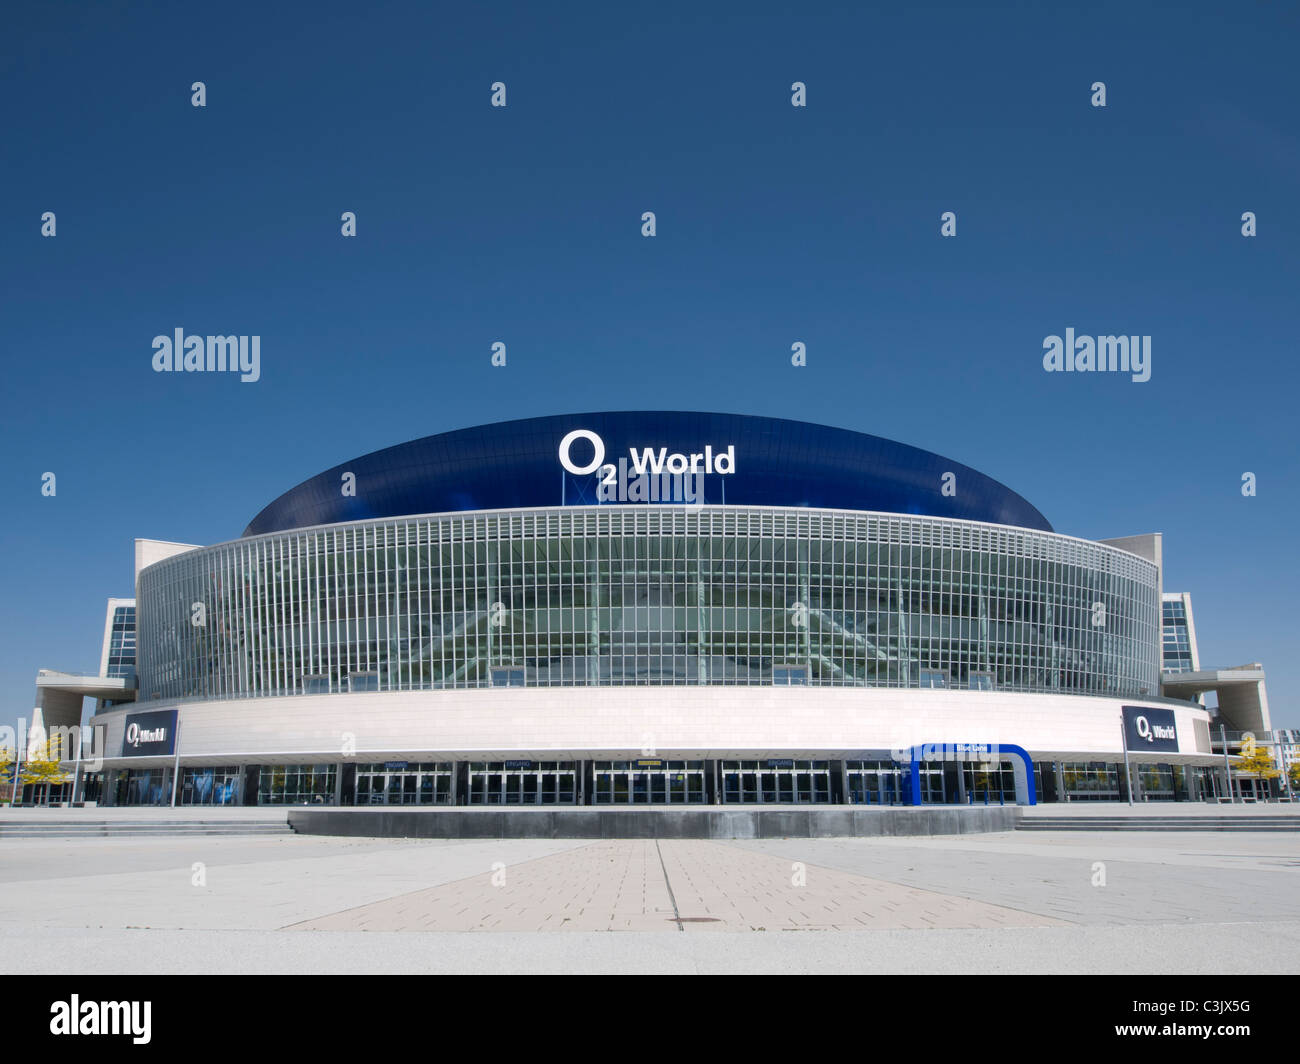 The O2 World Arena in Friedrichshain in Berlin Germany - Stock Image